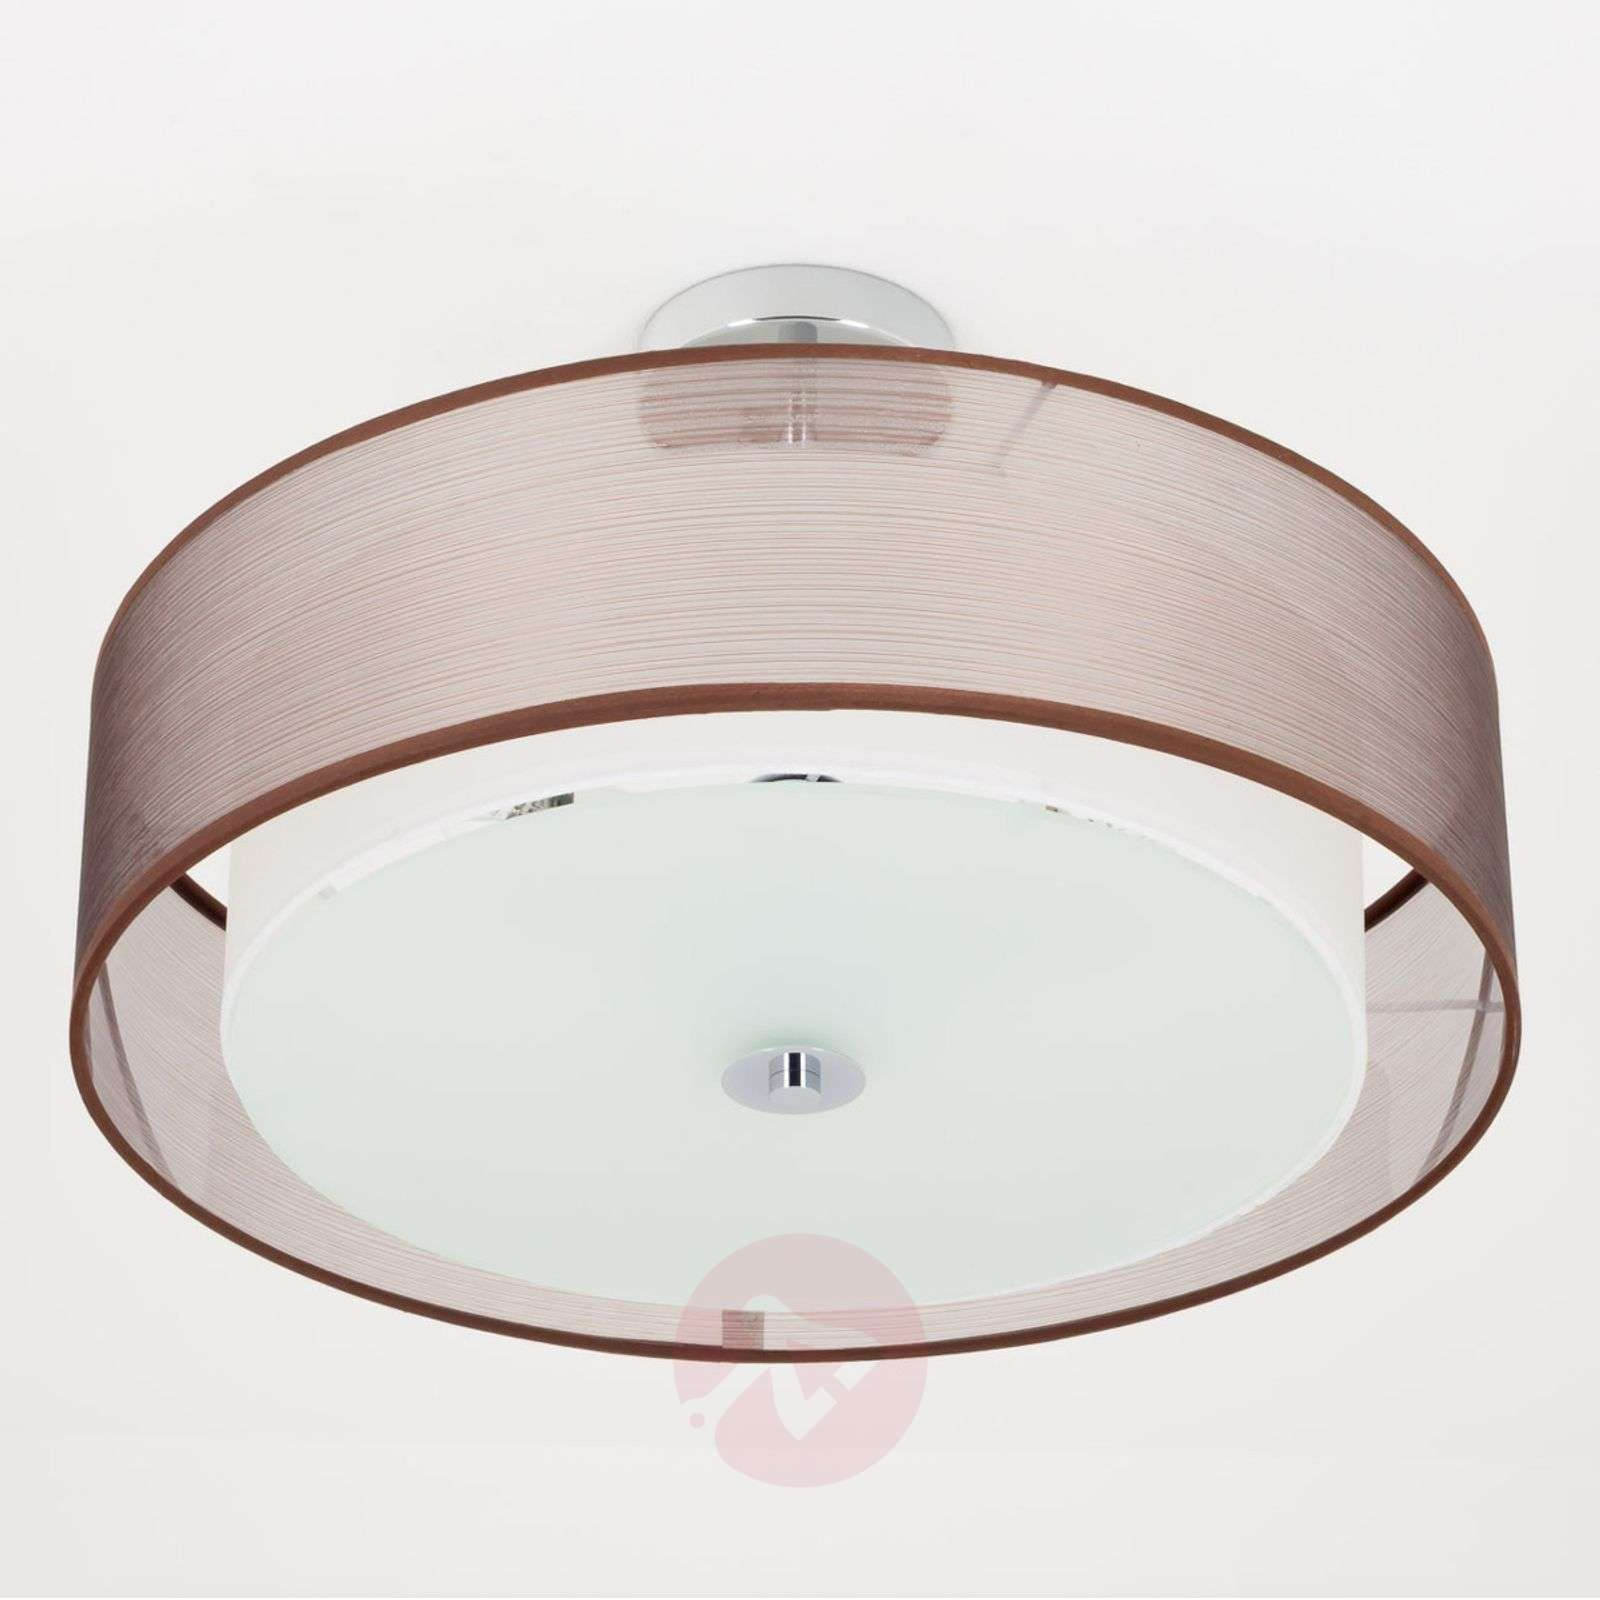 Pikka LED ceiling light with a brown lampshade-9620152-01